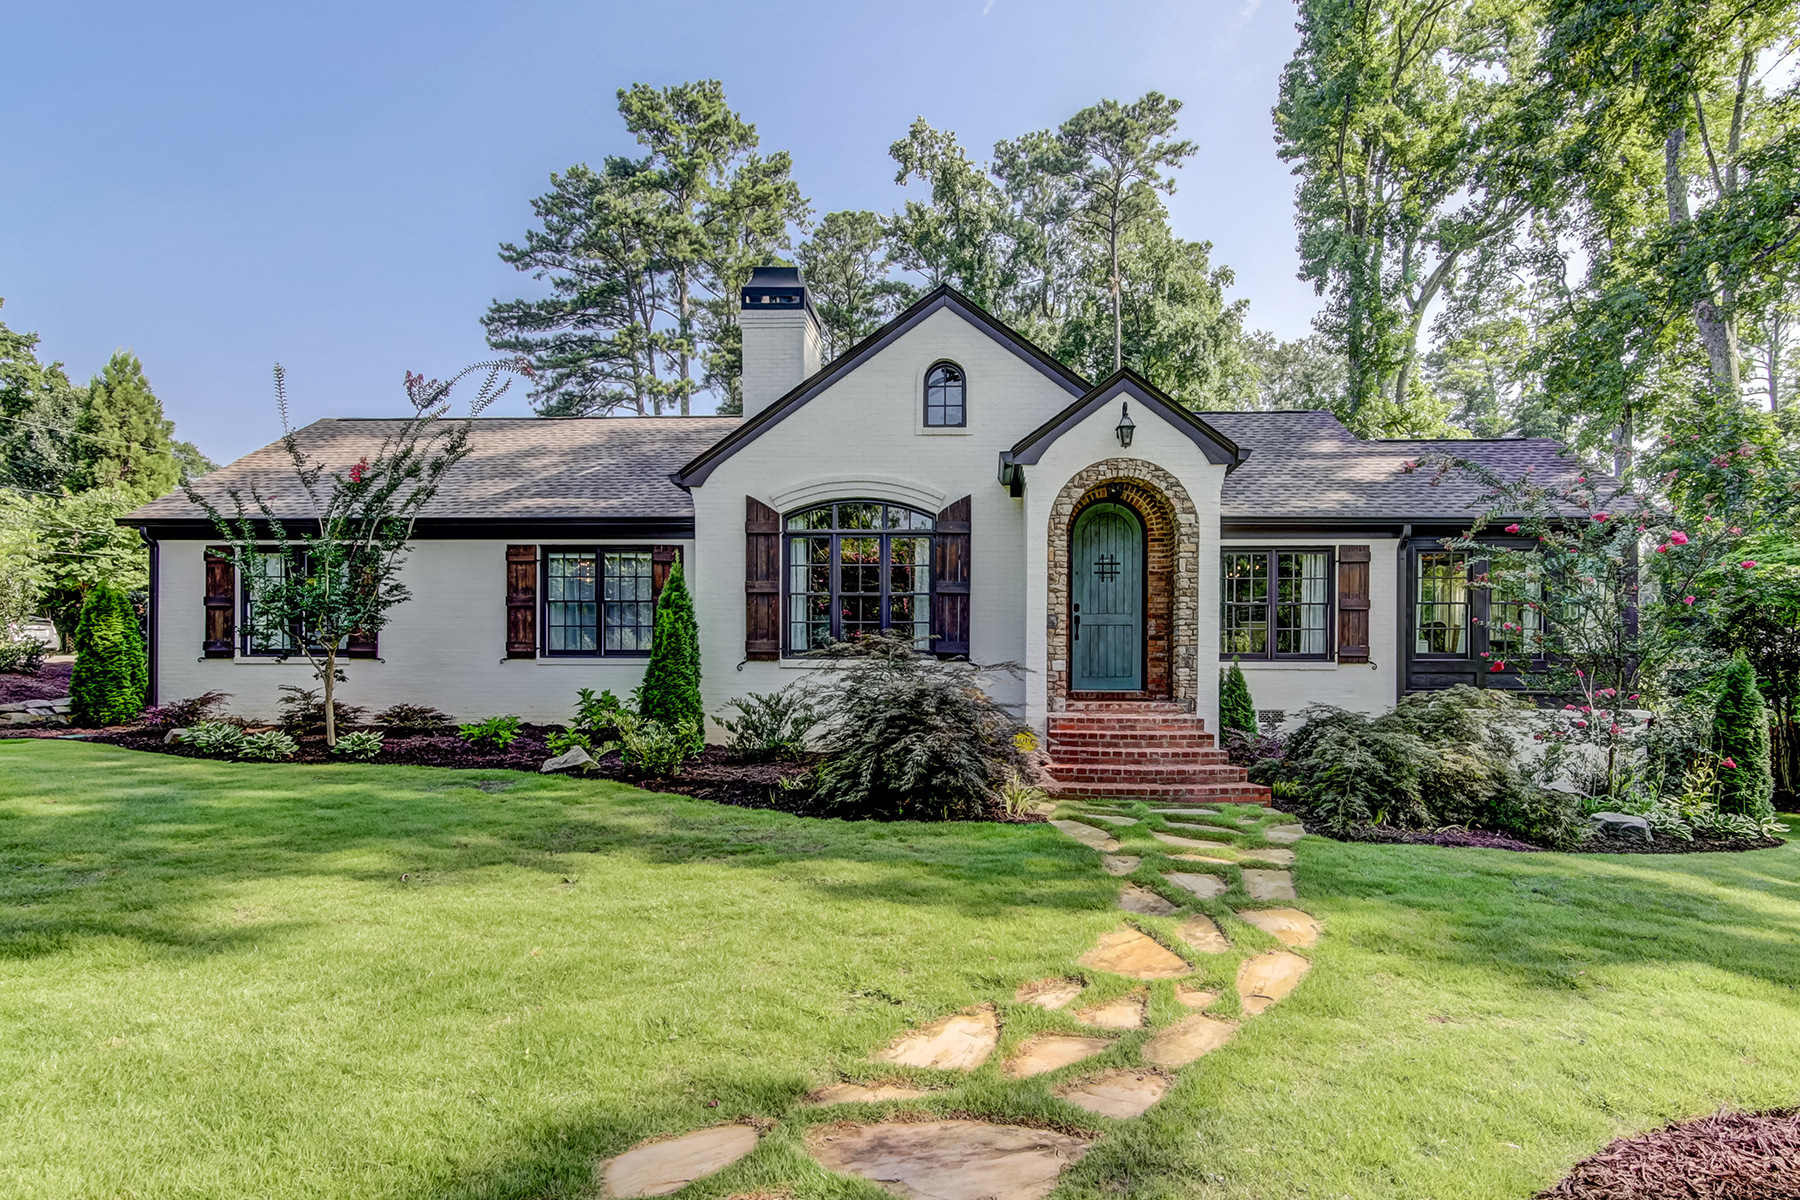 Single Family Home for Sale at European Ranch Home On Large Corner Lot 1445 Collier Drive SE Smyrna, Georgia 30080 United States